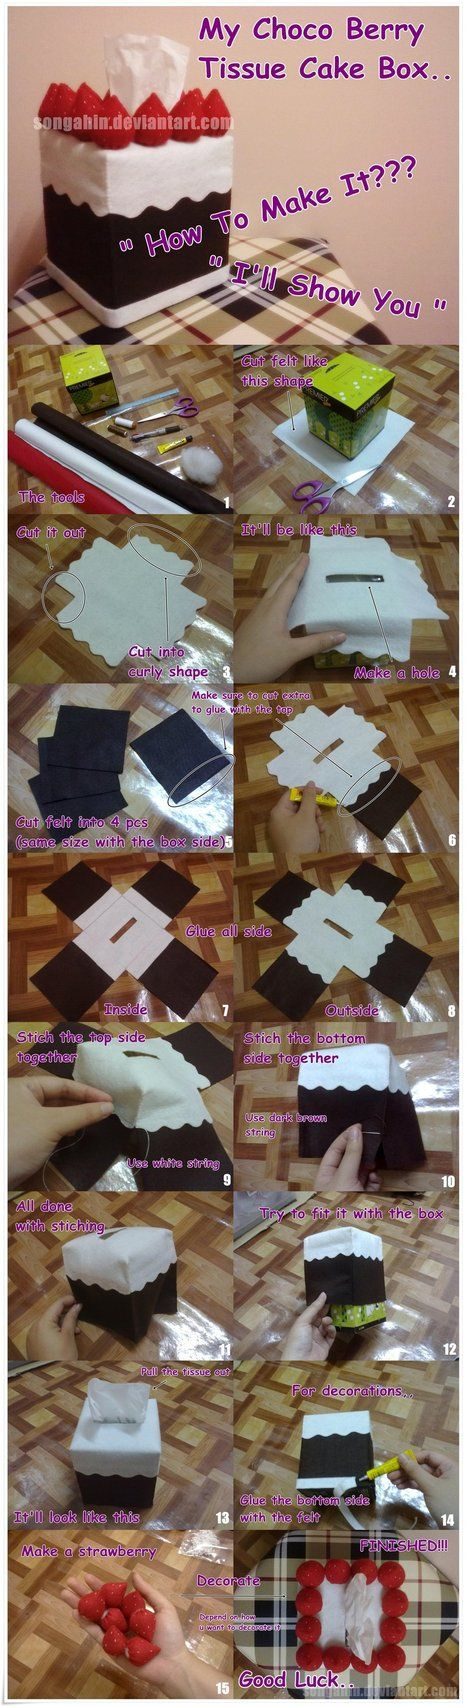 Choco Berry Tissue Bx Tutorial SongAhIn